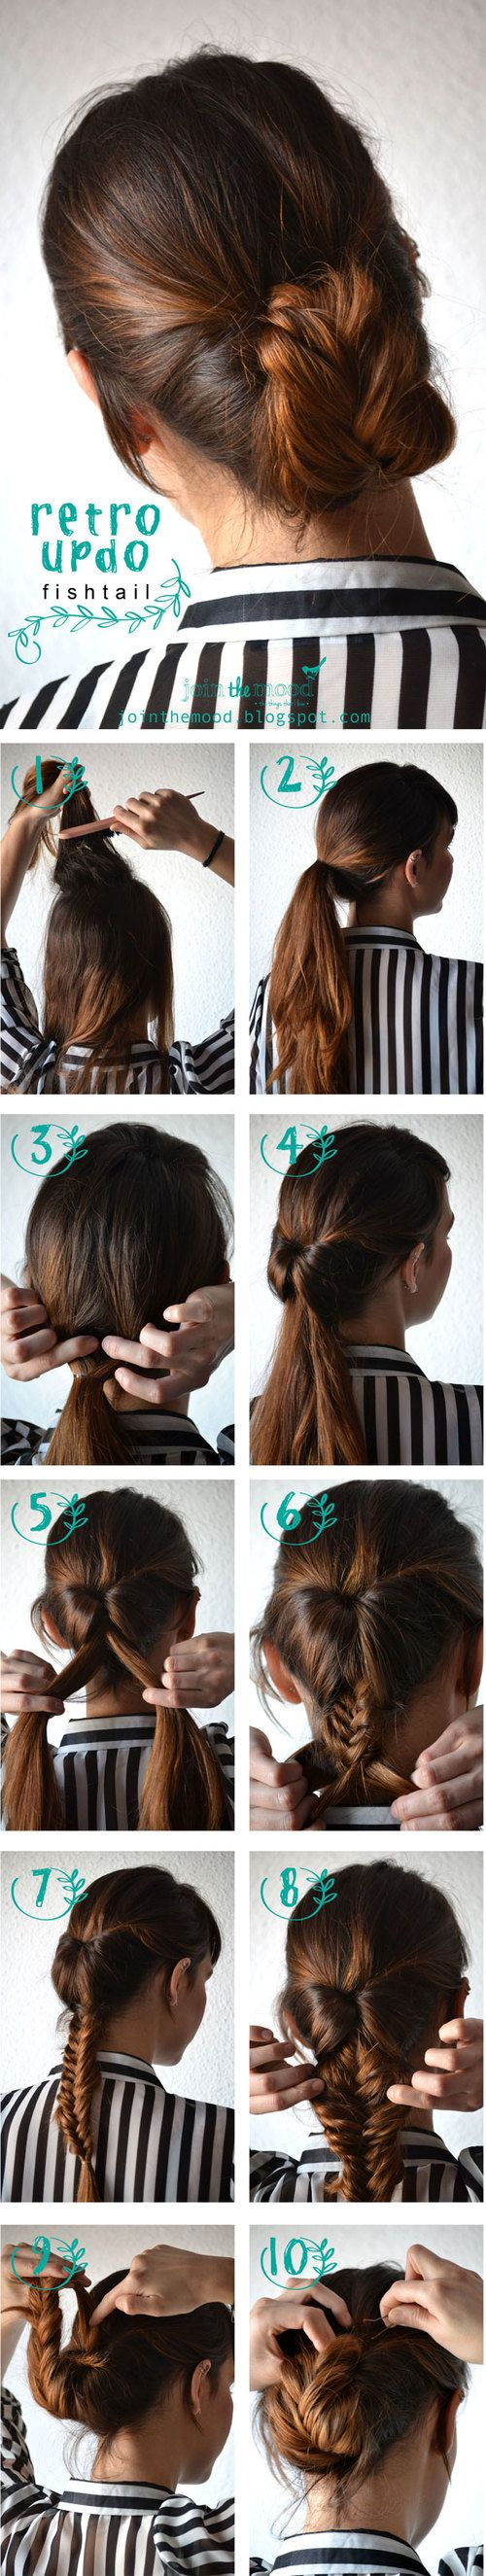 Retro Updo Hair Tutorial